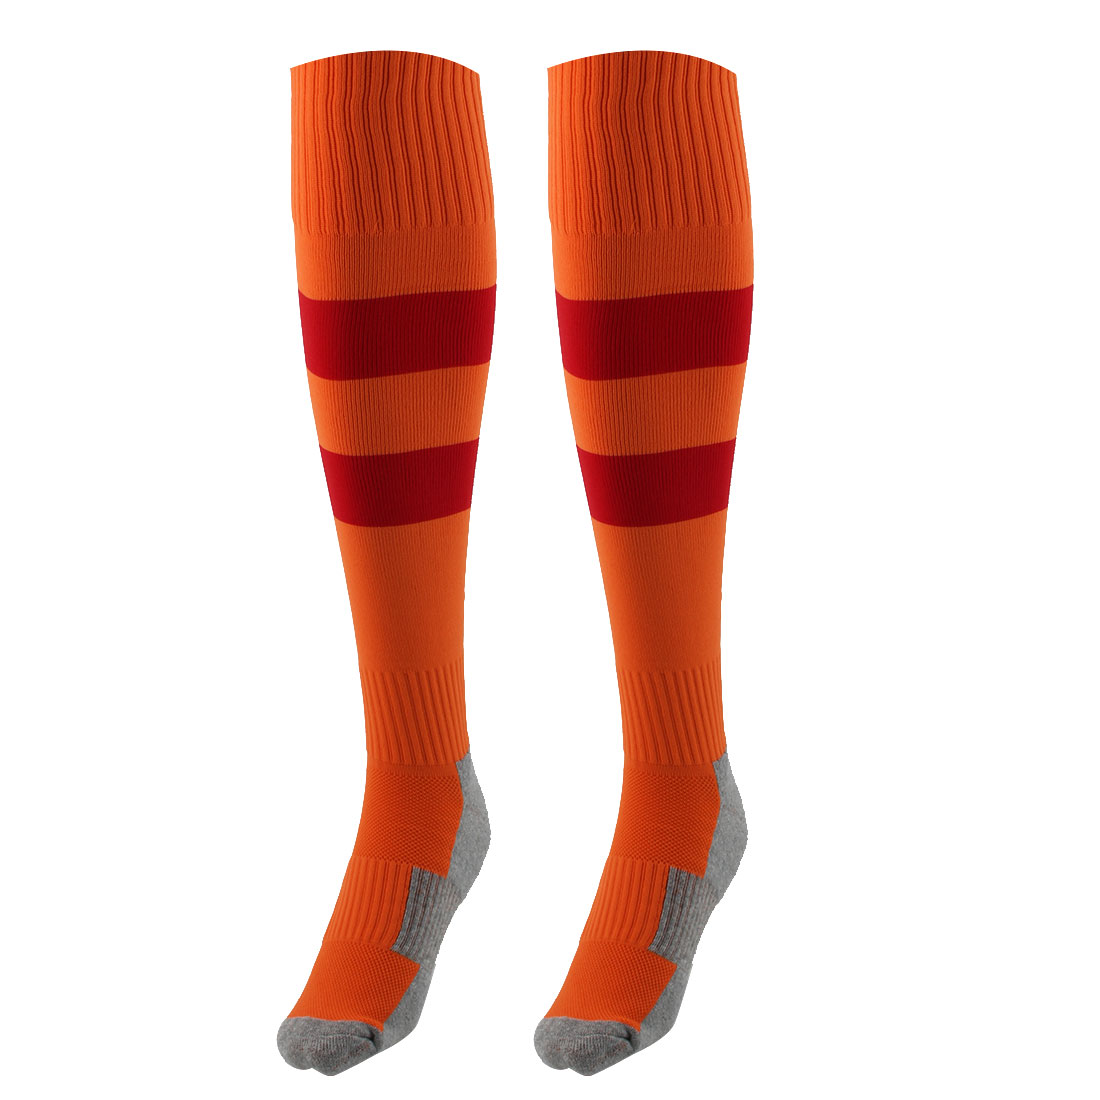 Outdoor Sports Nylon Knee High Style Stretch Baseball Soccer Football Long Socks Stockings Orange Red Pair